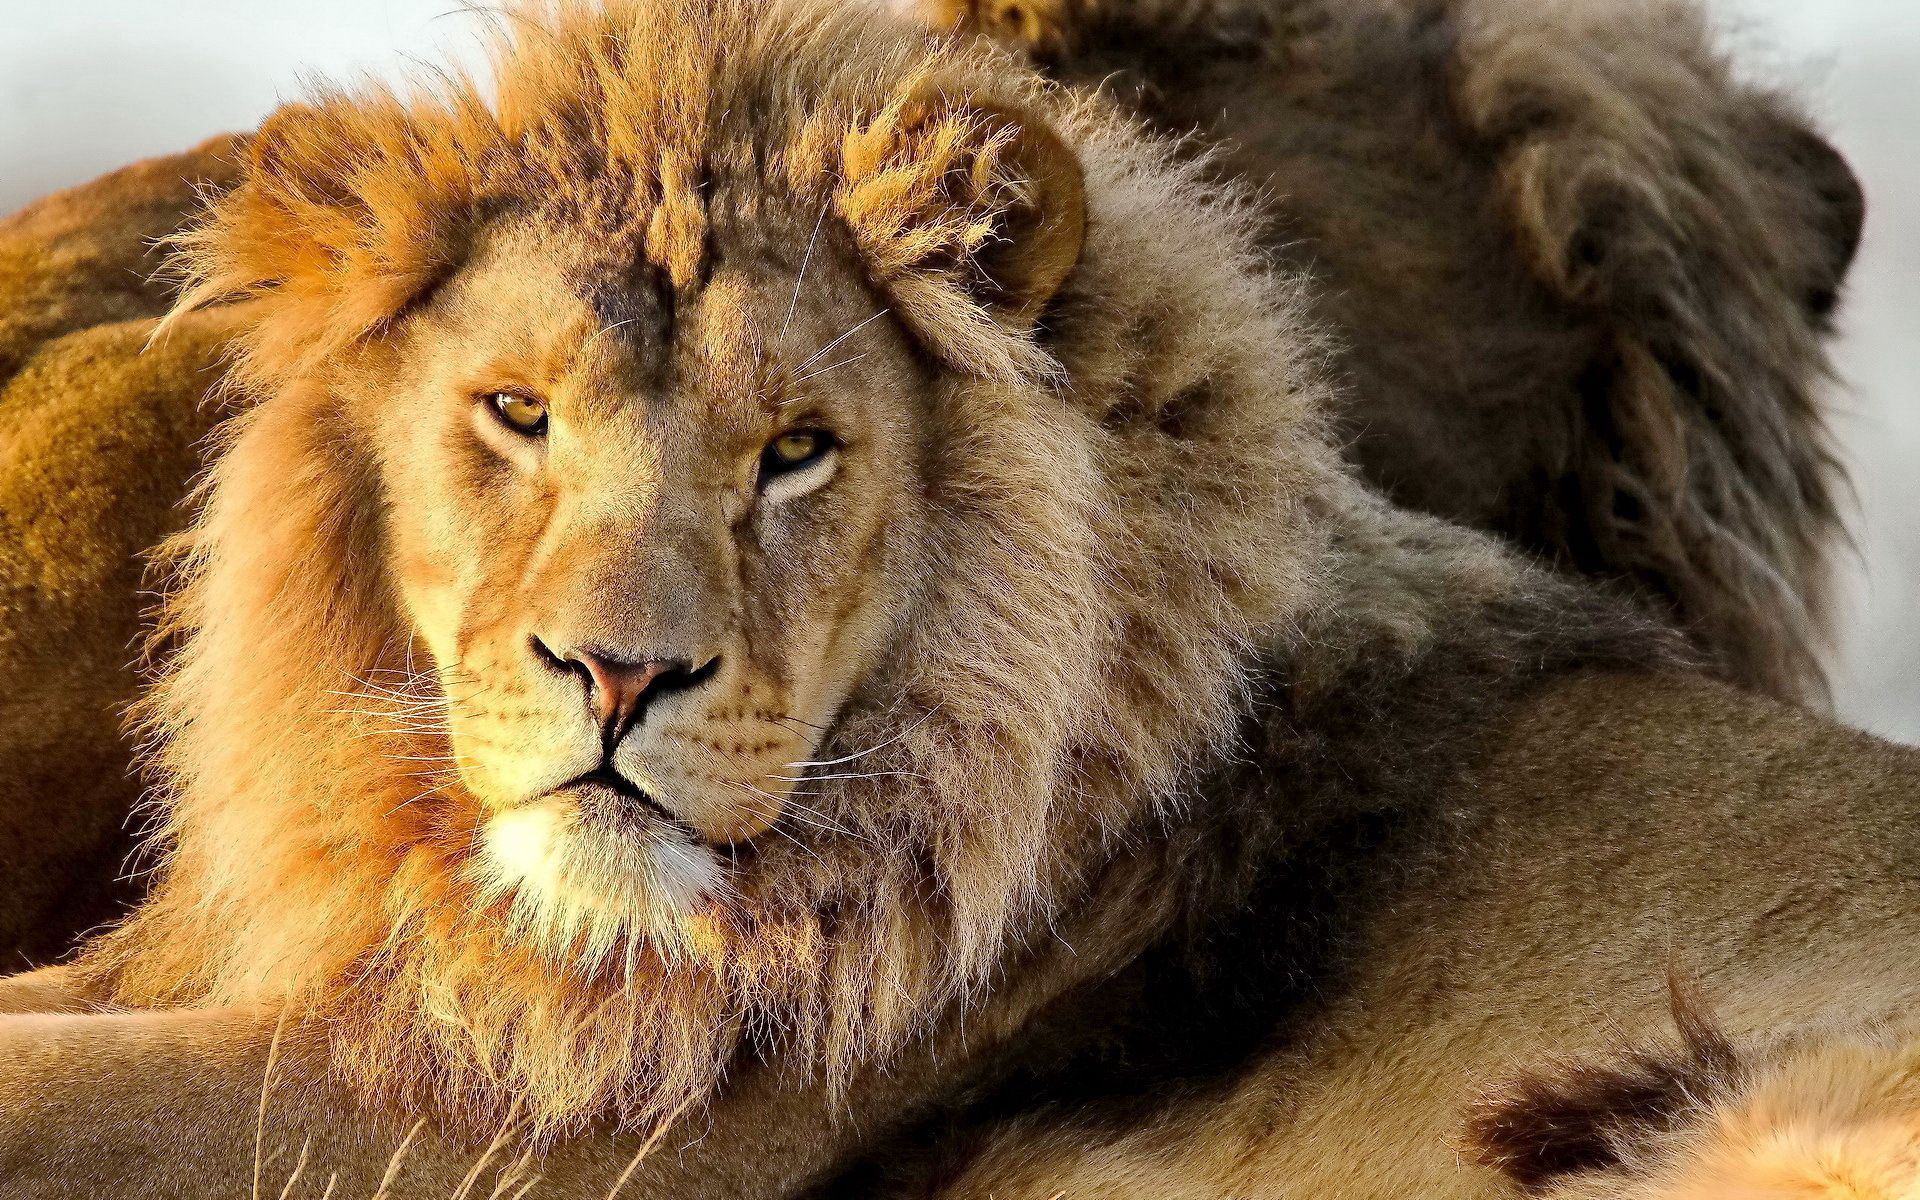 130039 download wallpaper Animals, Lion, Predator, Sight, Opinion, Mane screensavers and pictures for free